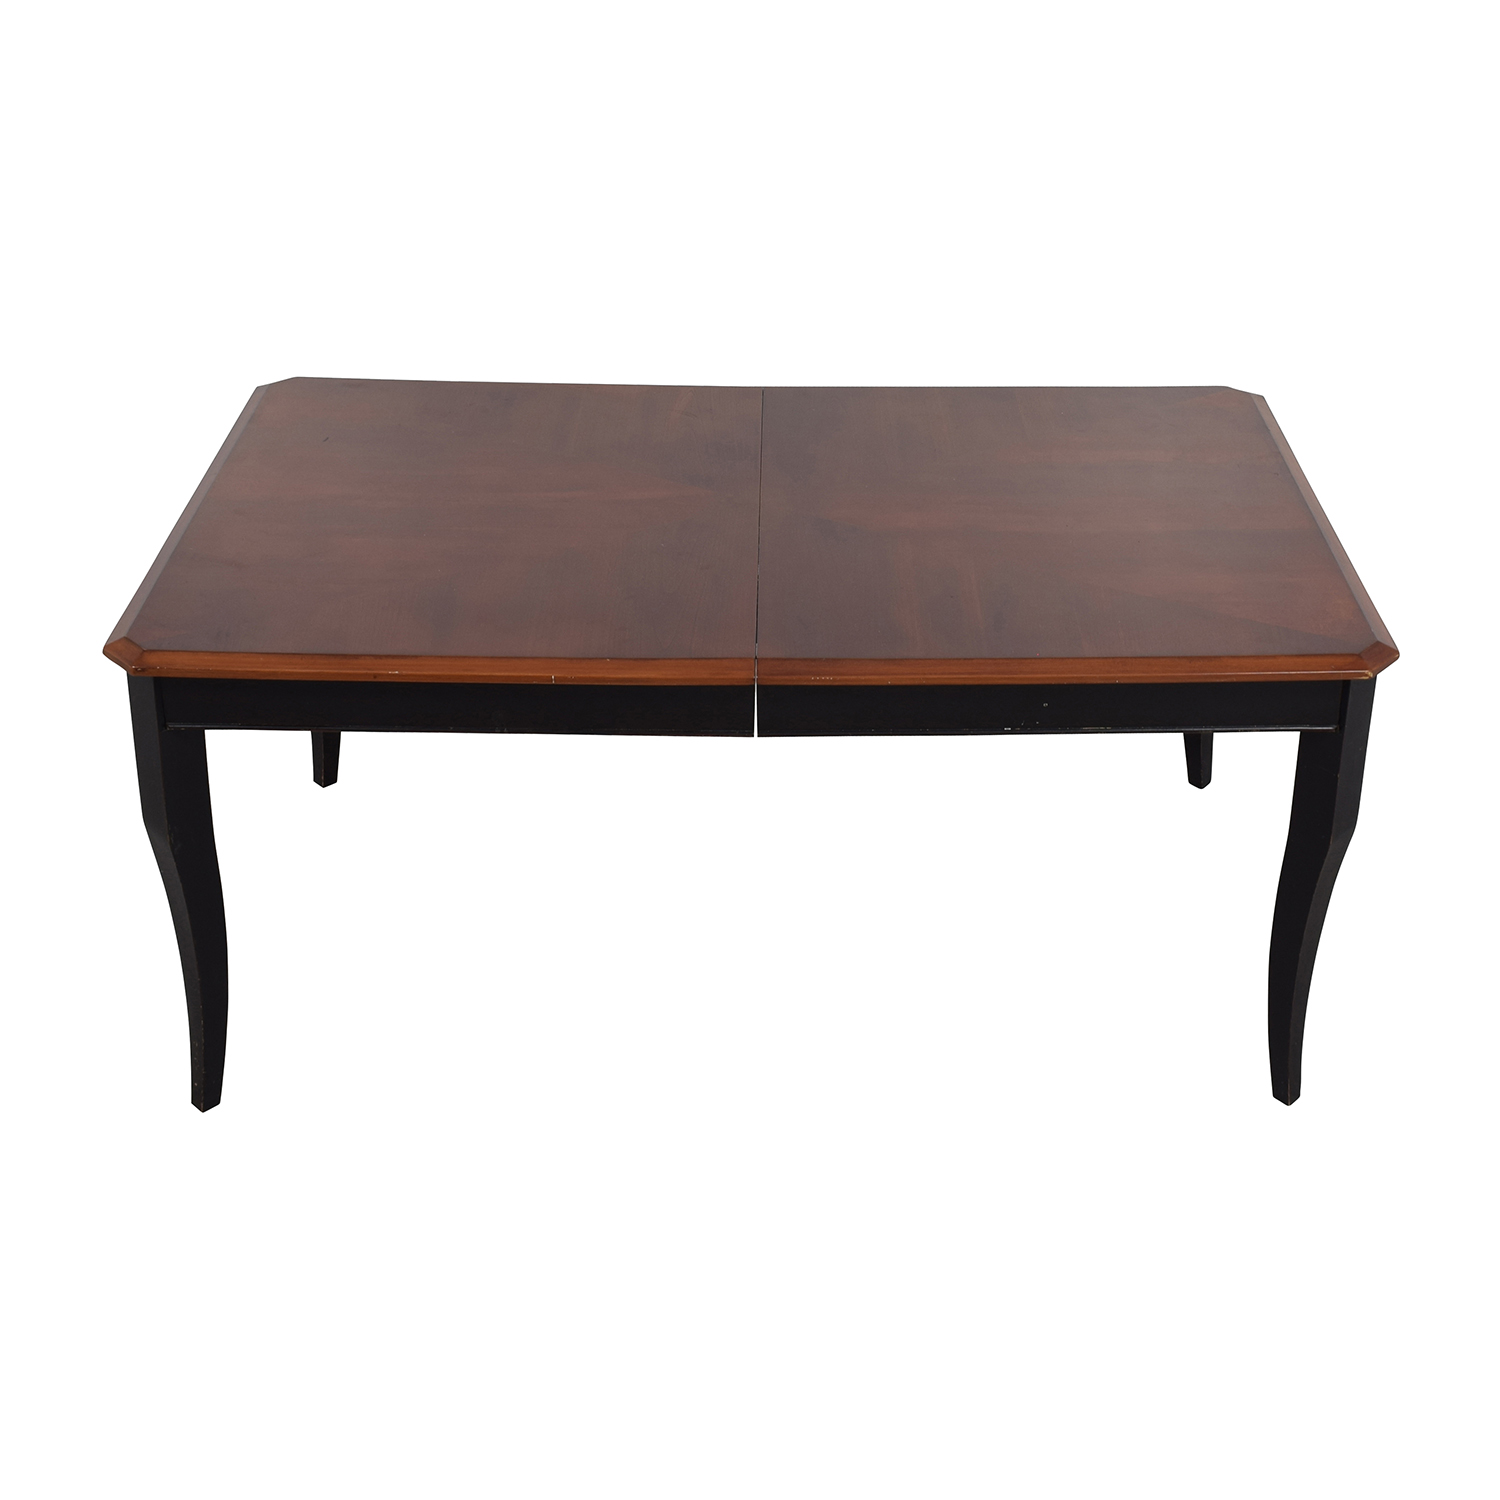 shop Huffman Koos Huffman Koos Extendable Wood Top Dining Table online